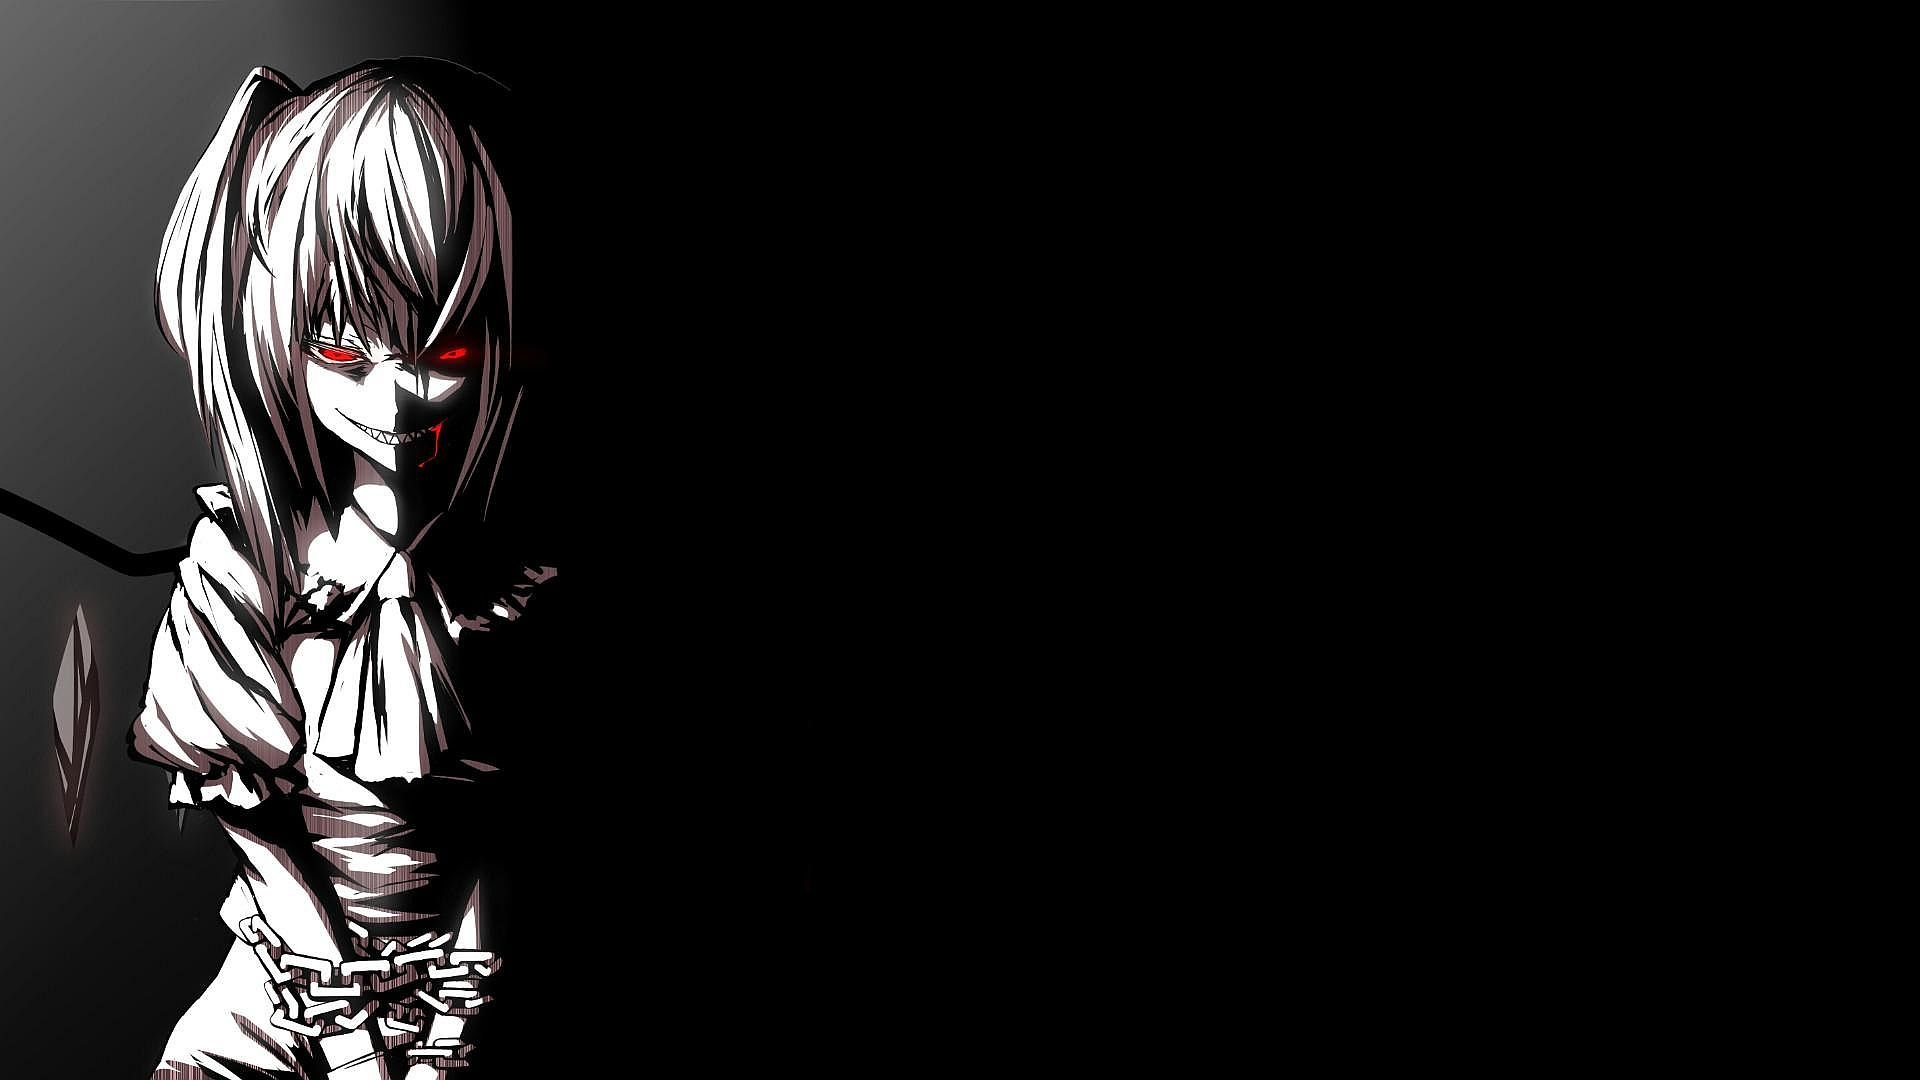 anime wallpaper posted by john anderson